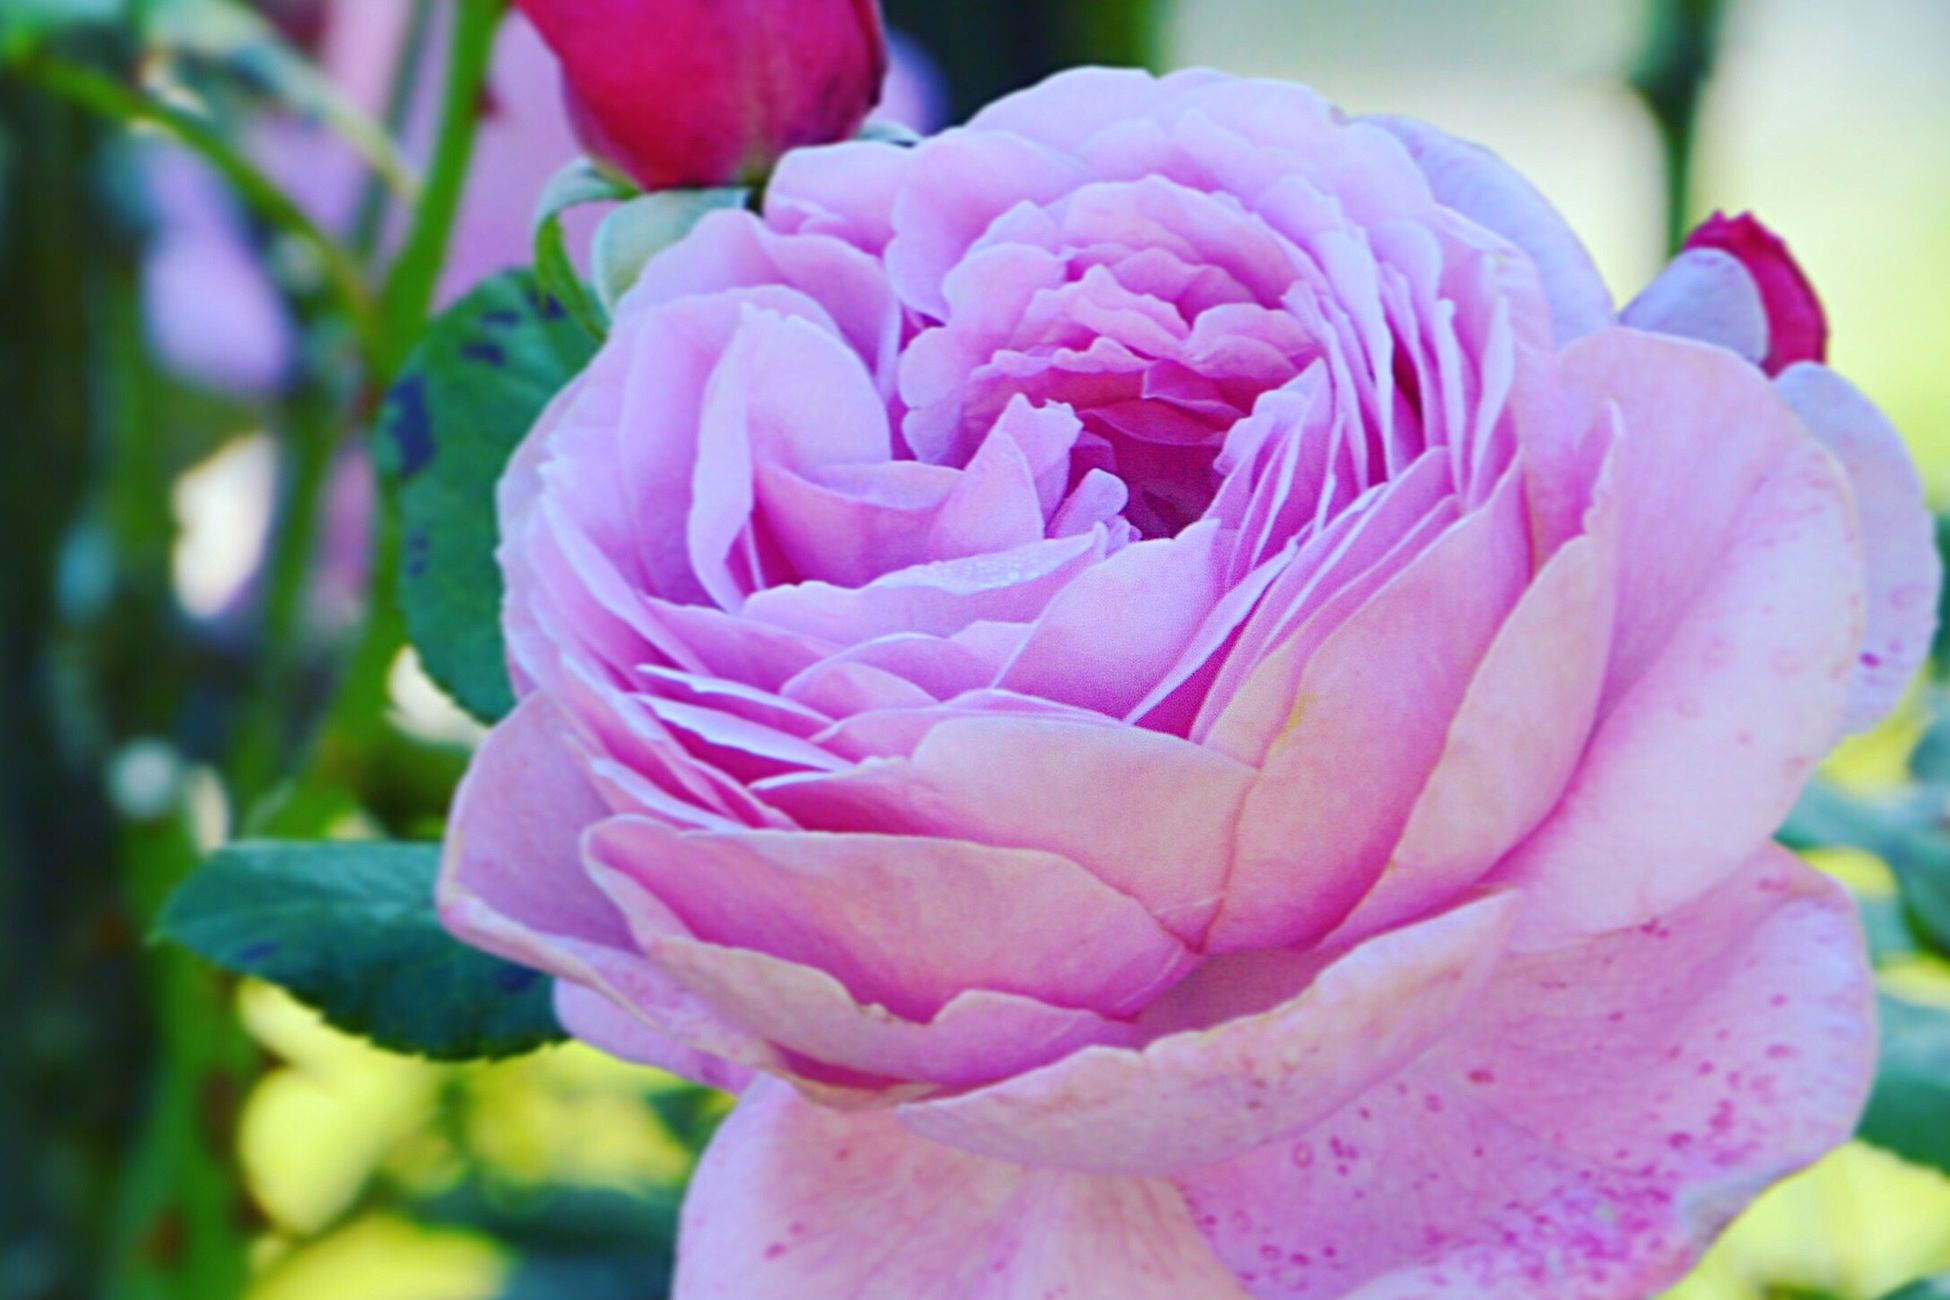 Flower Petal Fragility Beauty In Nature Flower Head Freshness Nature Pink Color Growth Close-up Plant No People Blooming Day Outdoors Rosengarten Rosengarten Rose♥ Lieblingsblume